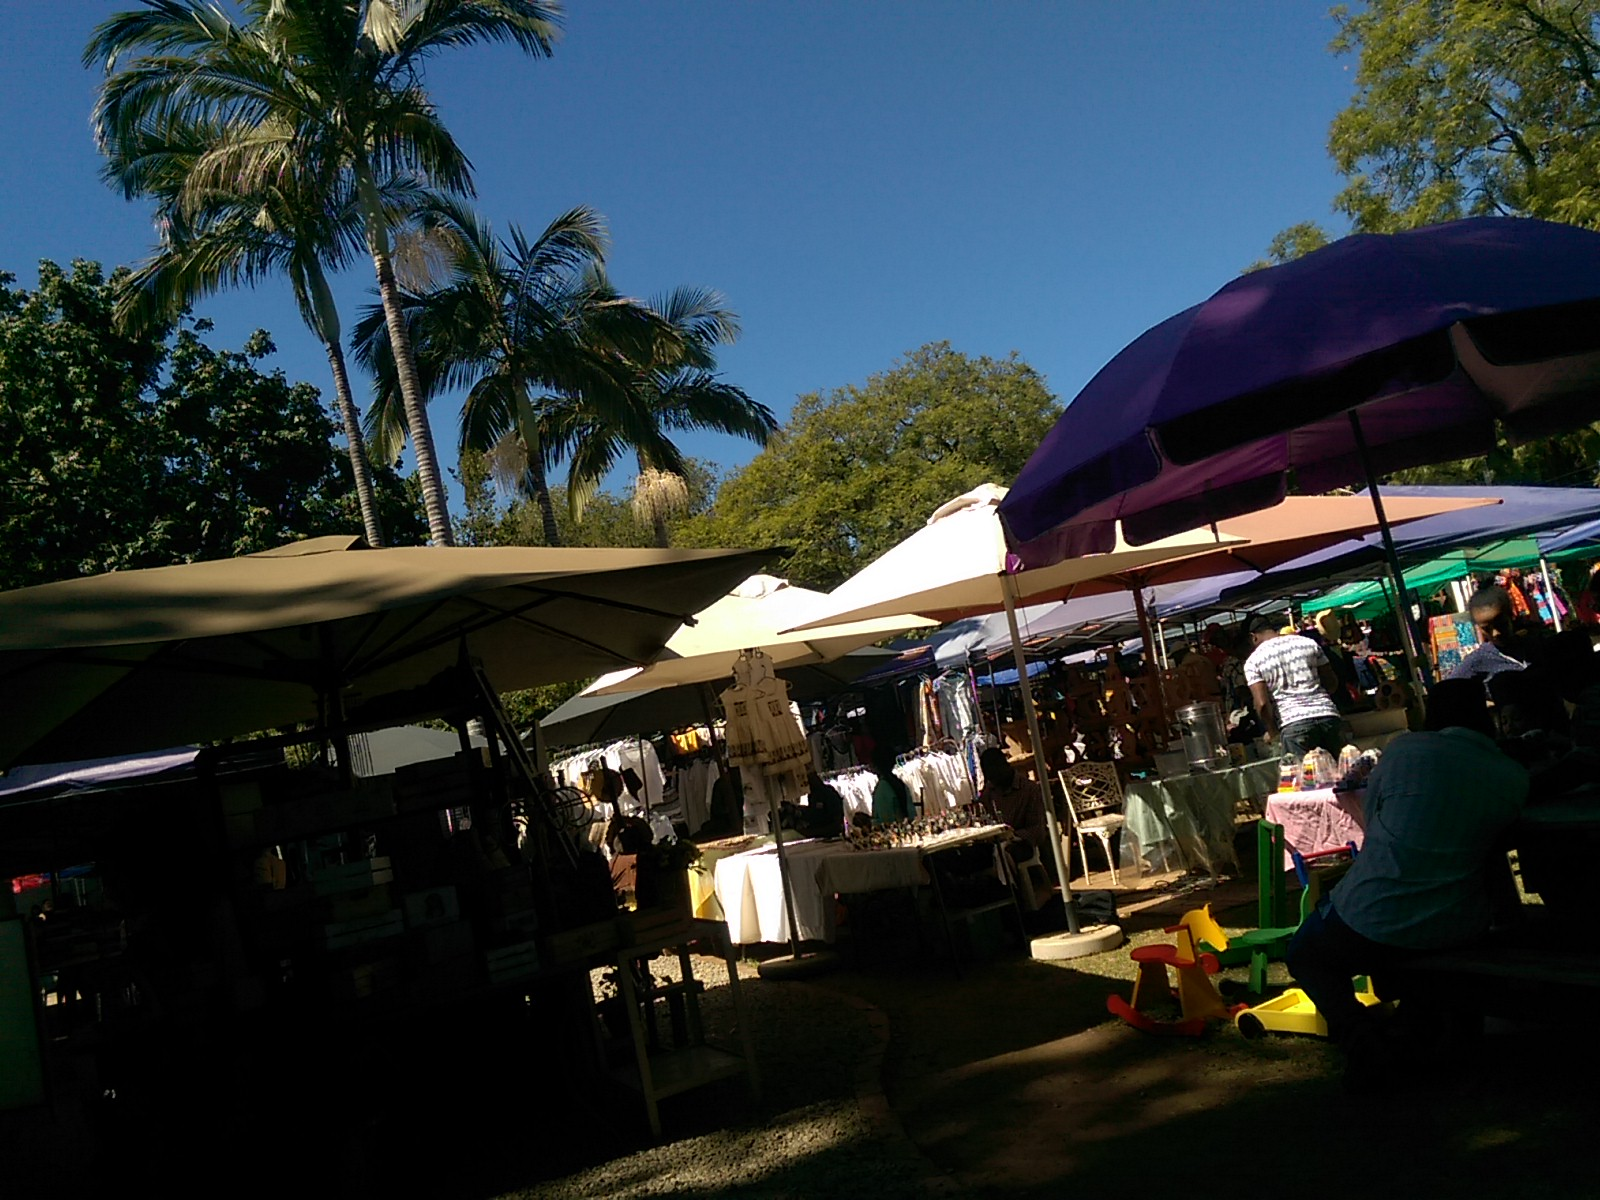 Colourful awnings at a market full of people, with a bright blue sky and palm trees